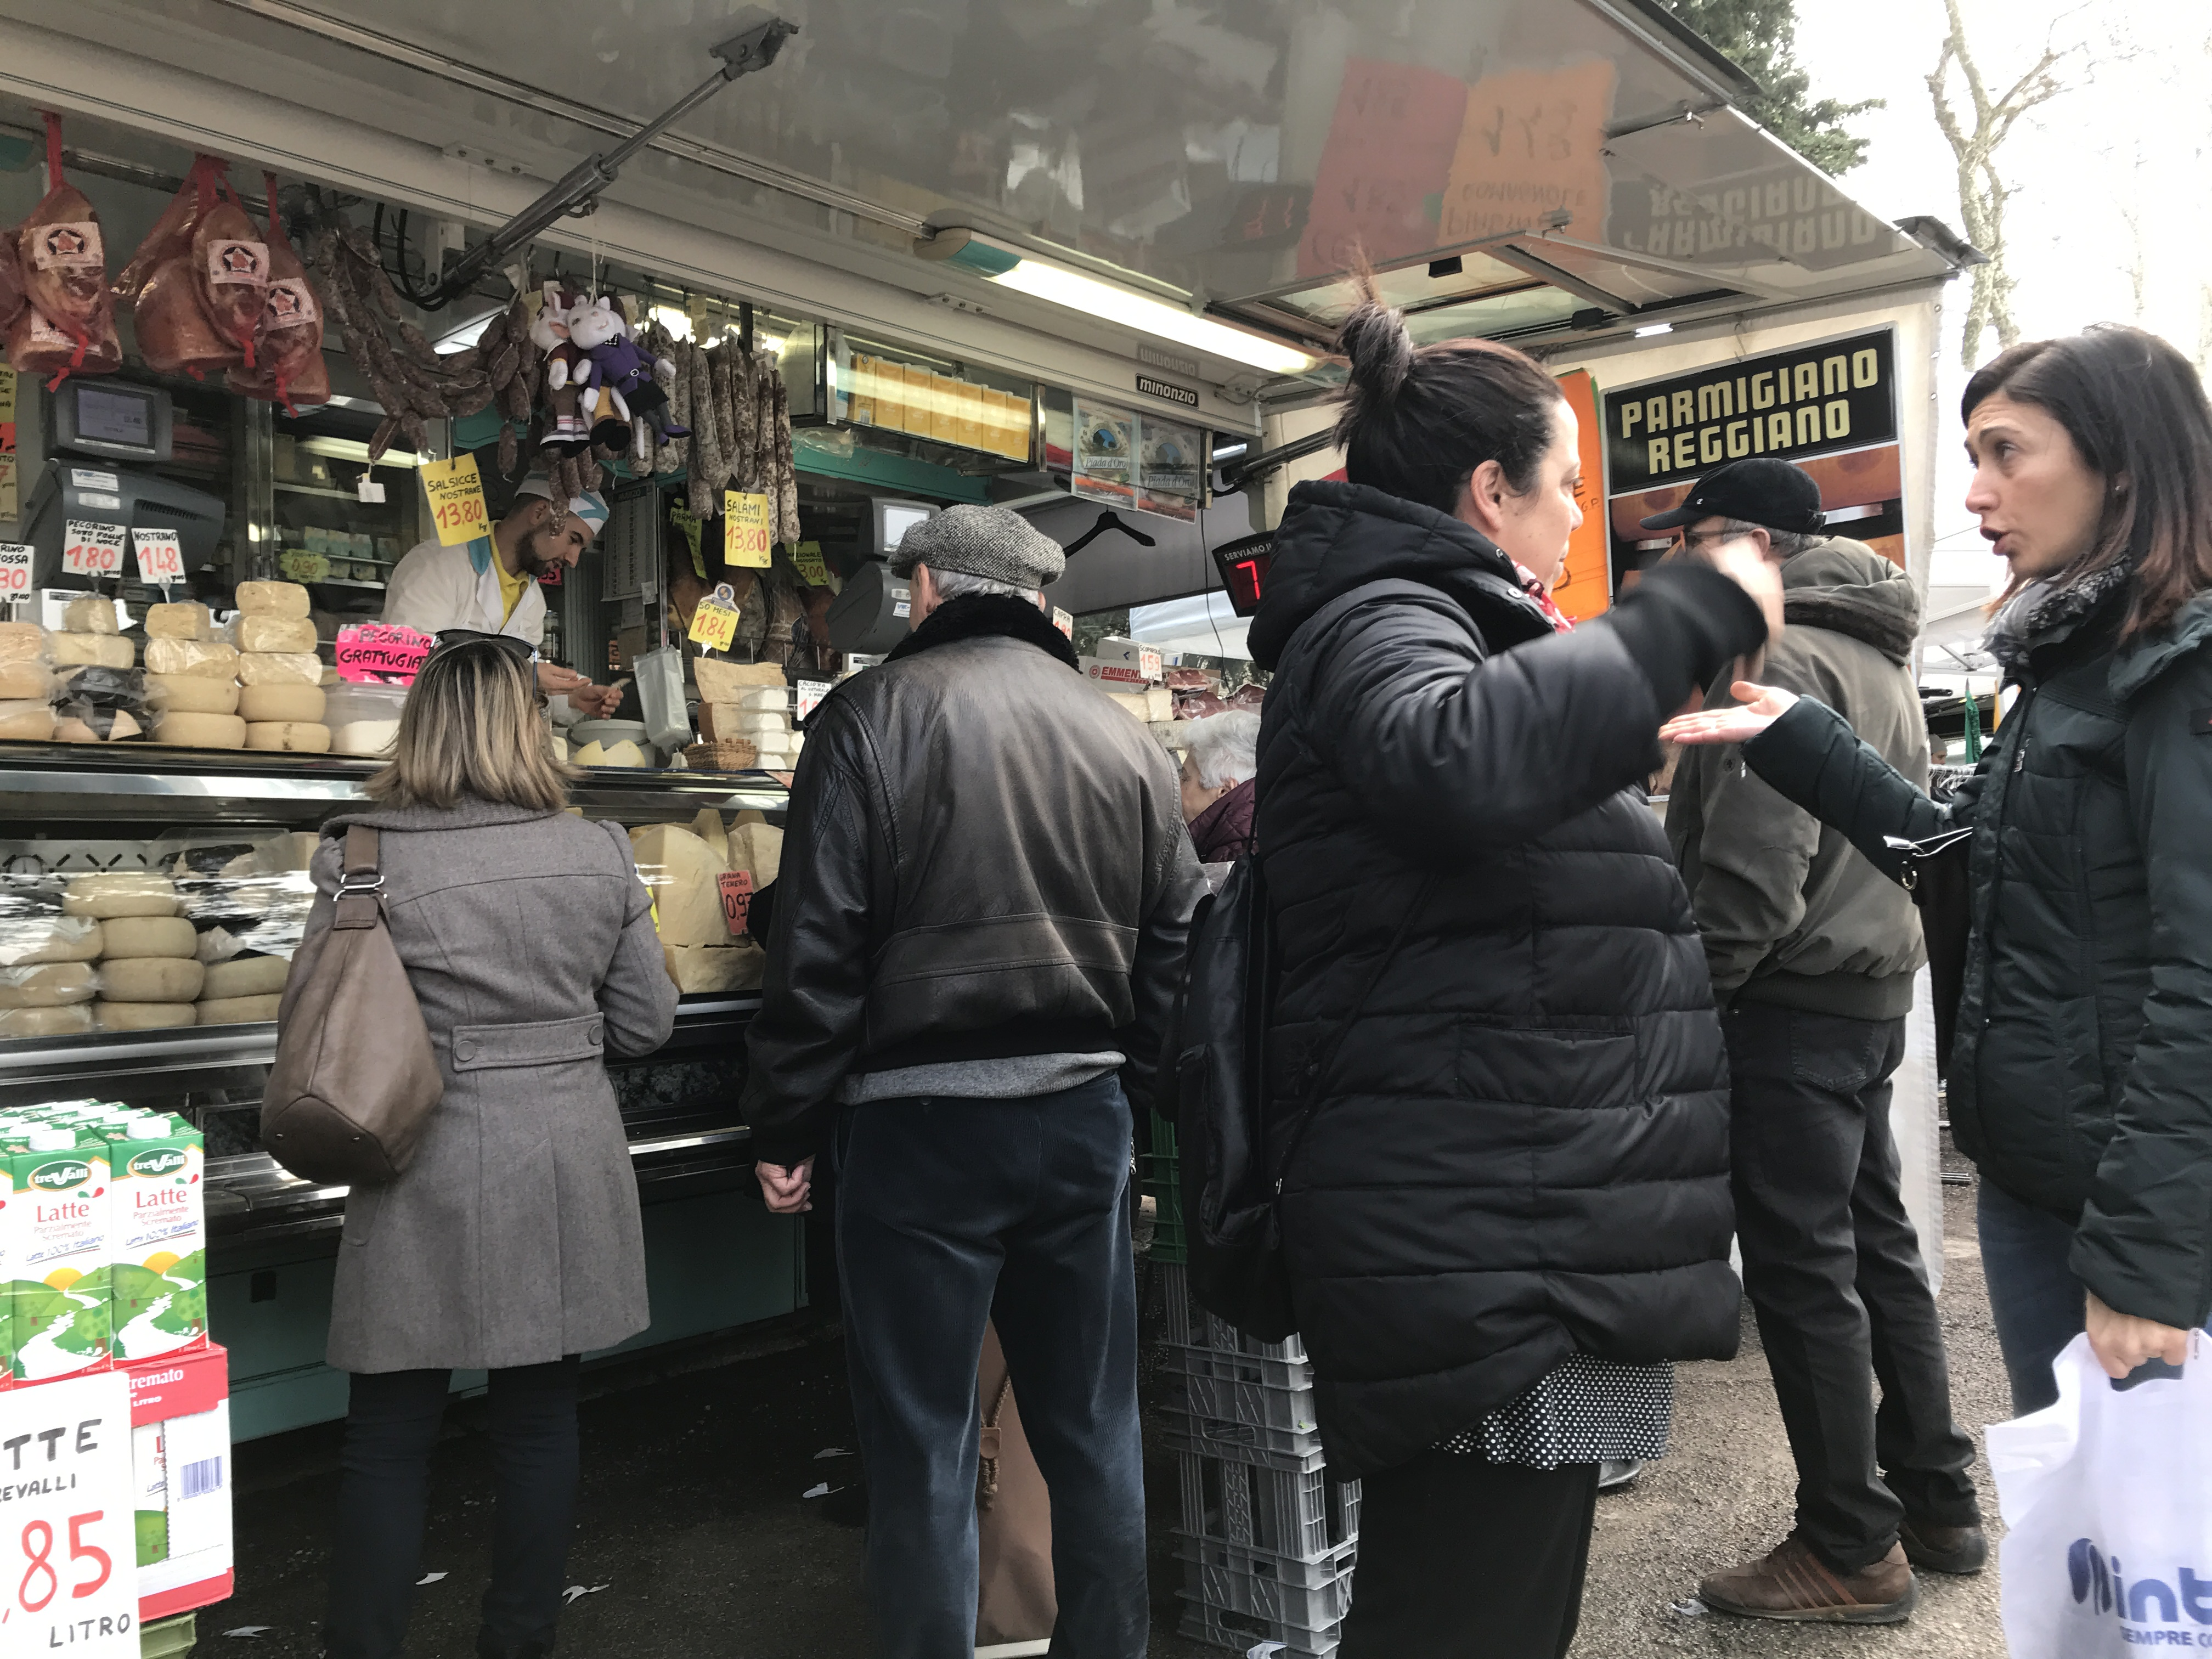 Waiting in line in the market is a social event where many people catch up with one another. Photo by Ryan Bedford.